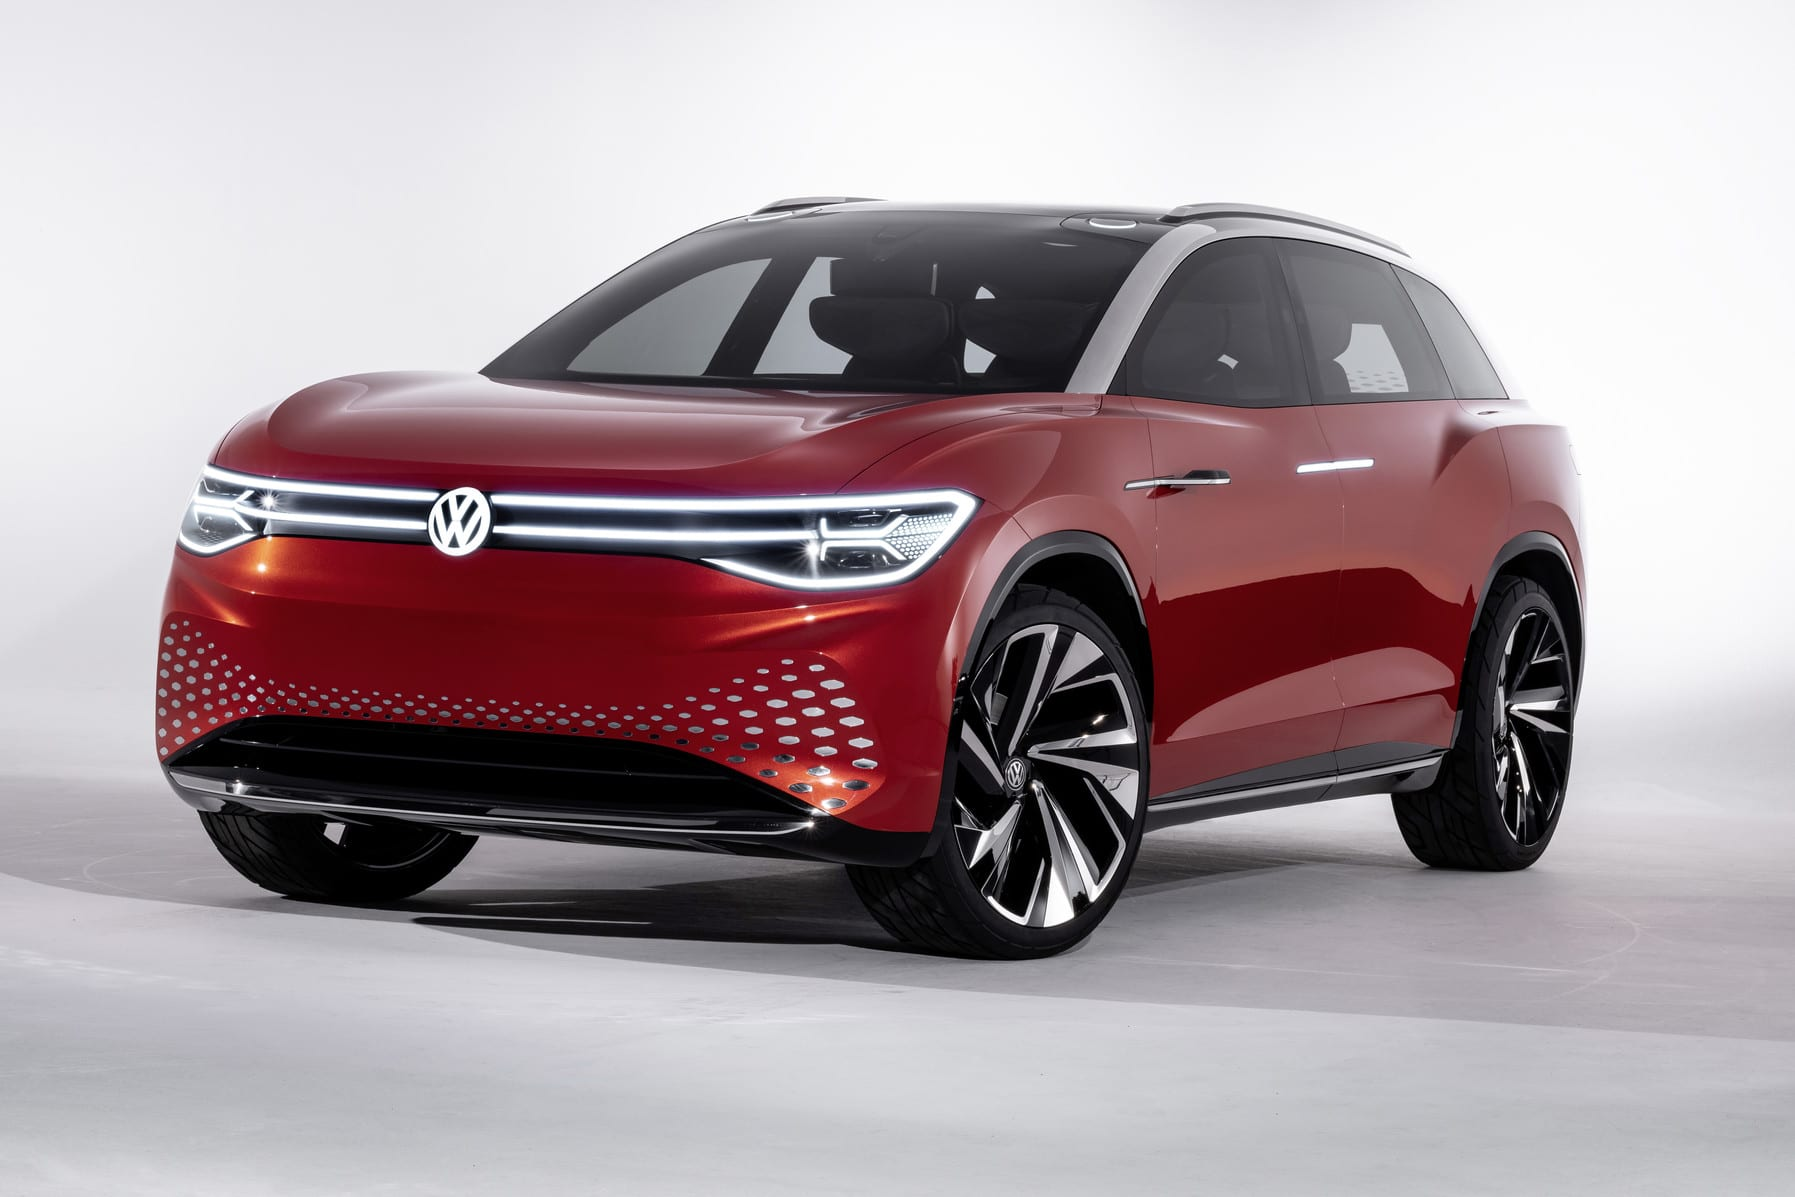 Volkswagen ID. ROOMZZ Electric SUV